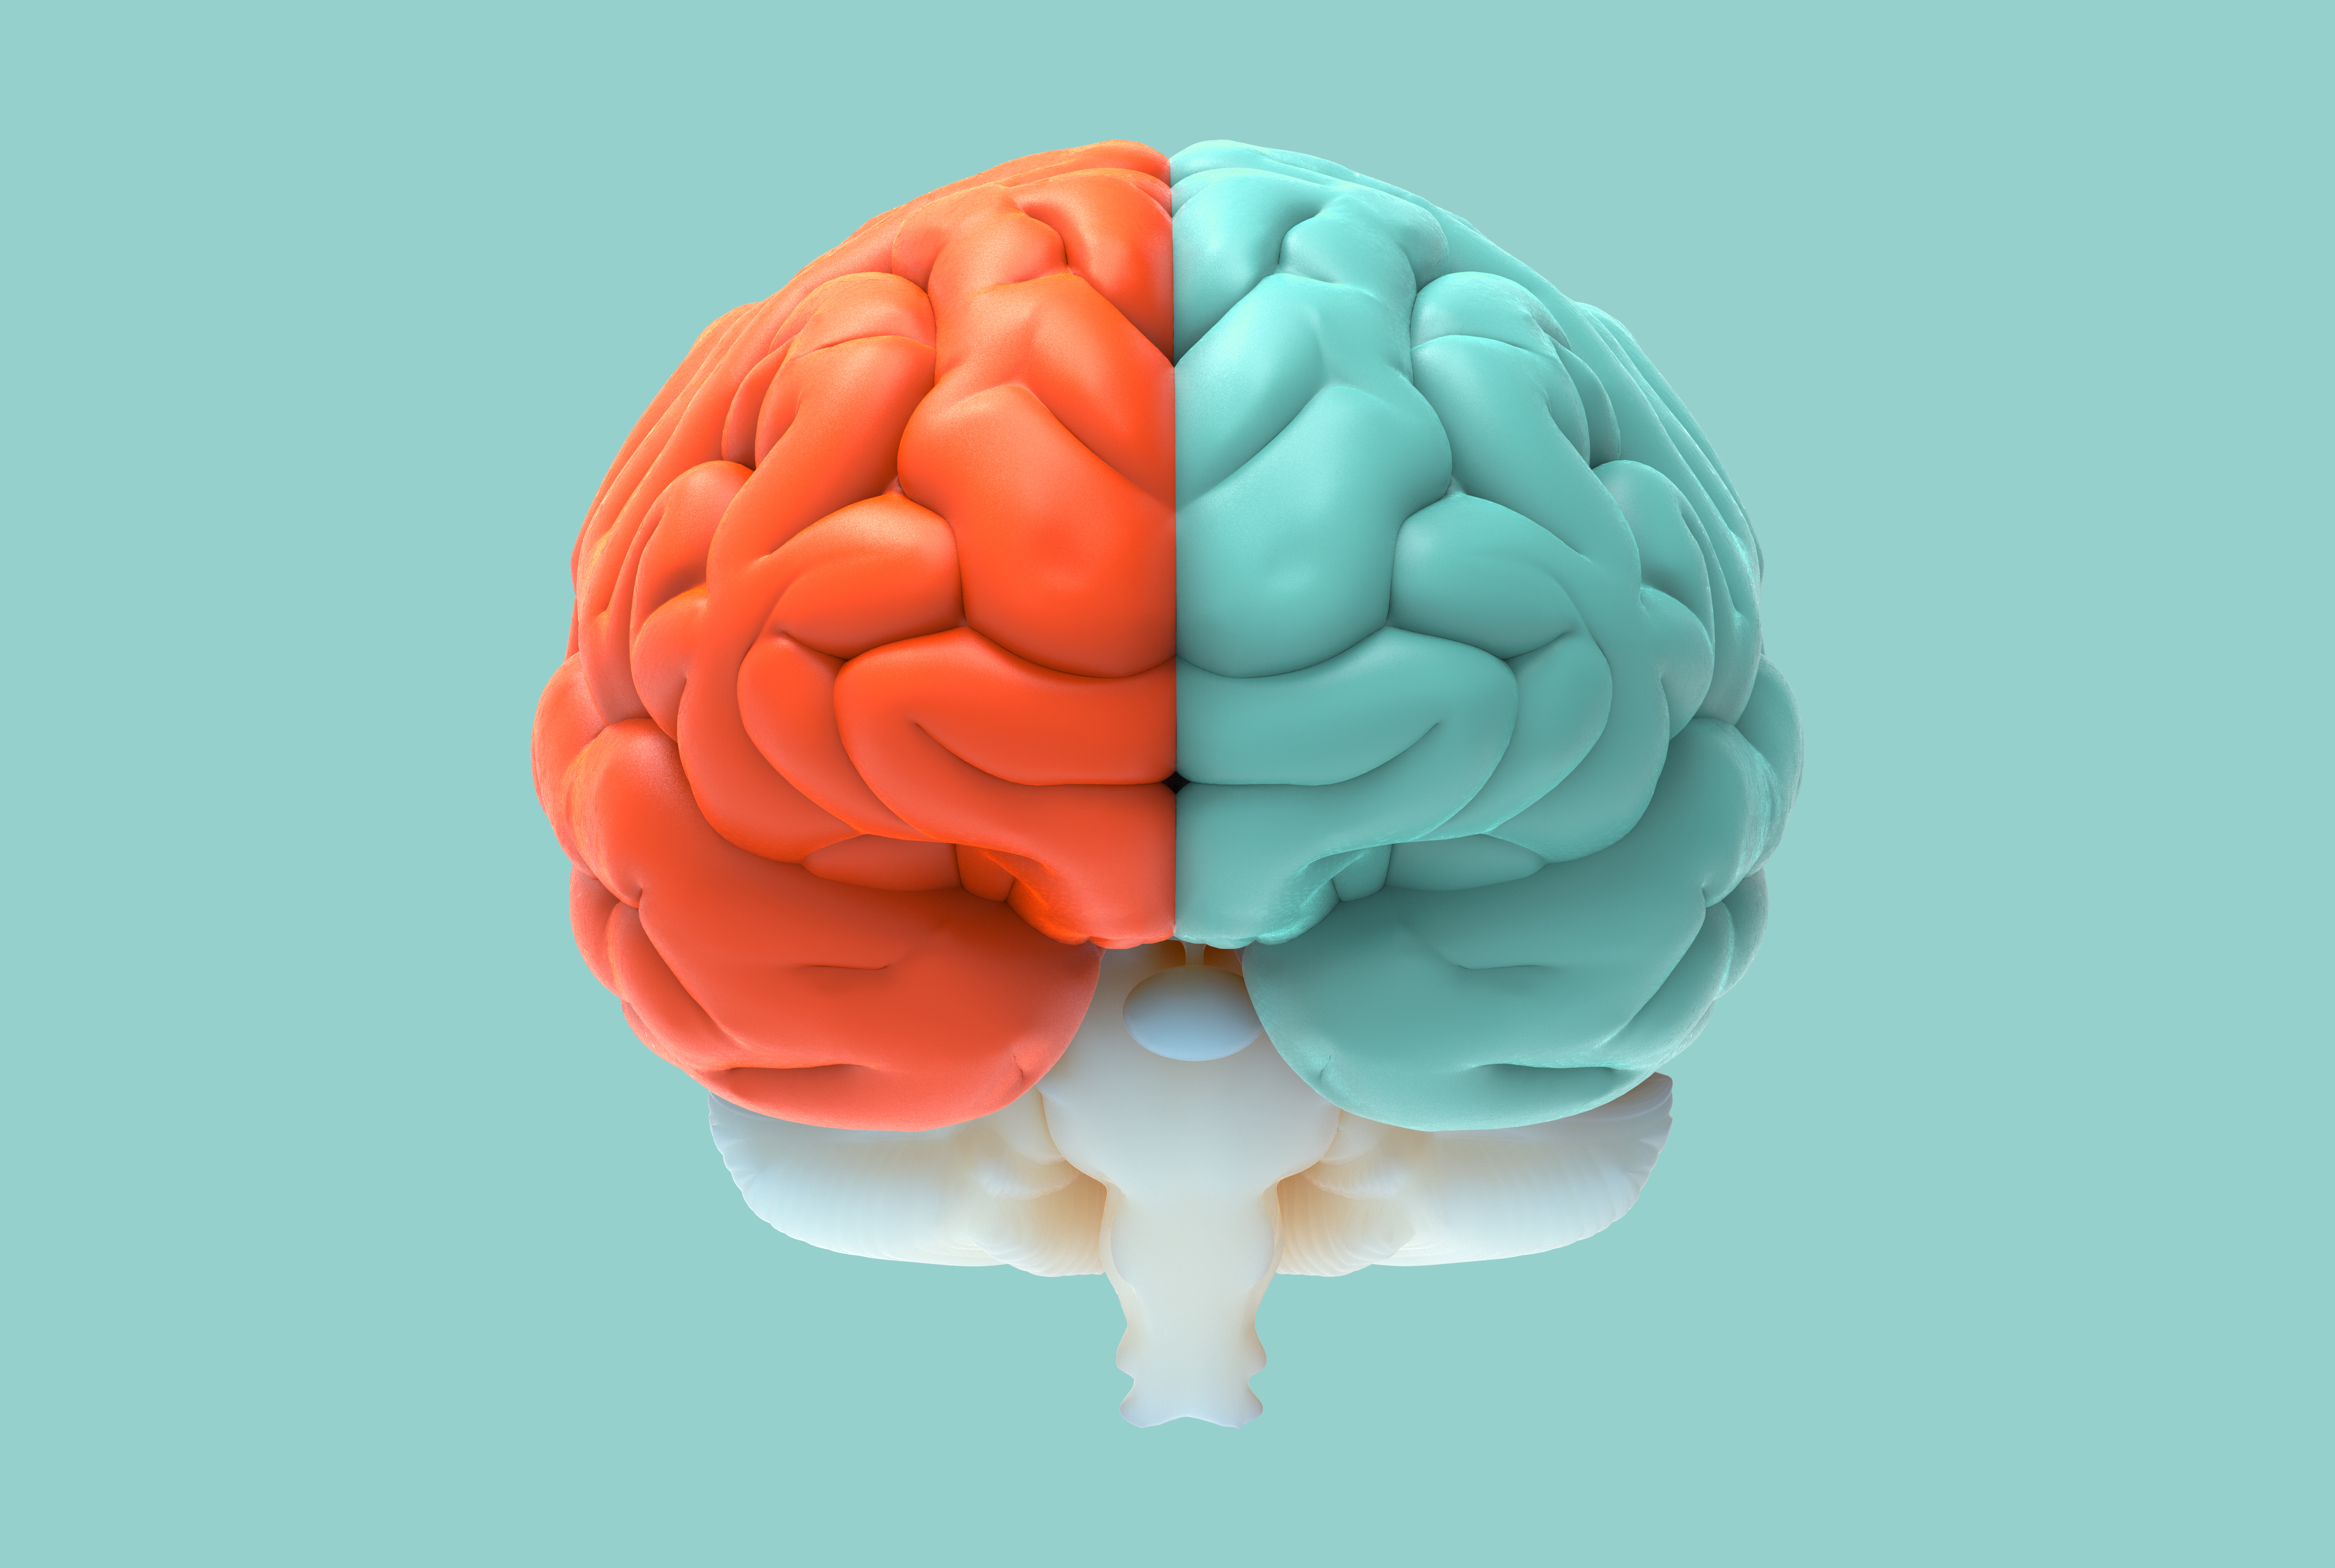 Are You A Left Brain or Right Brain? The Answer is...